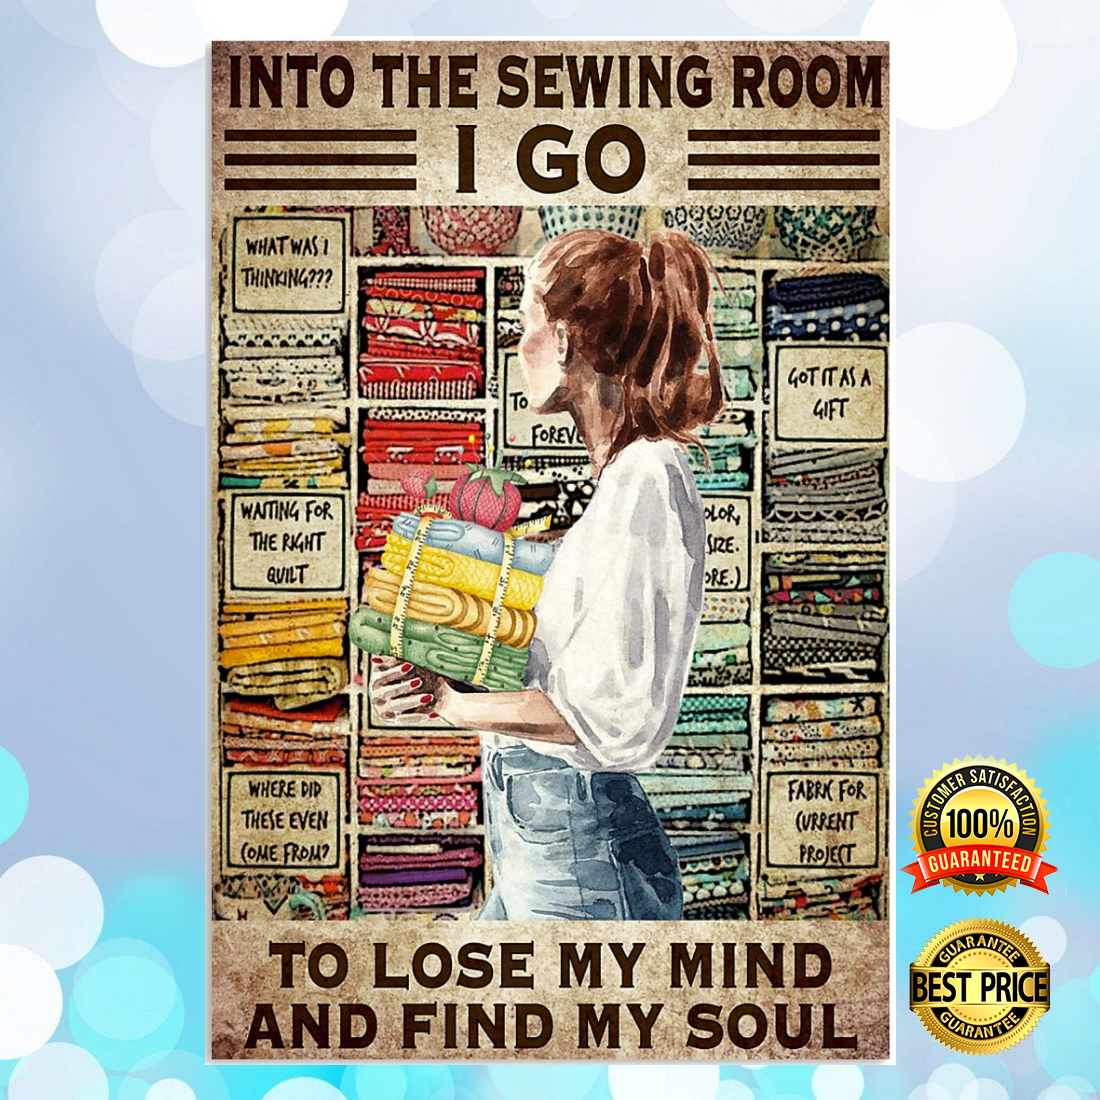 INTO THE SEWING ROOM I GO TO LOSE MY MIND AND FIND MY SOUL POSTER 6